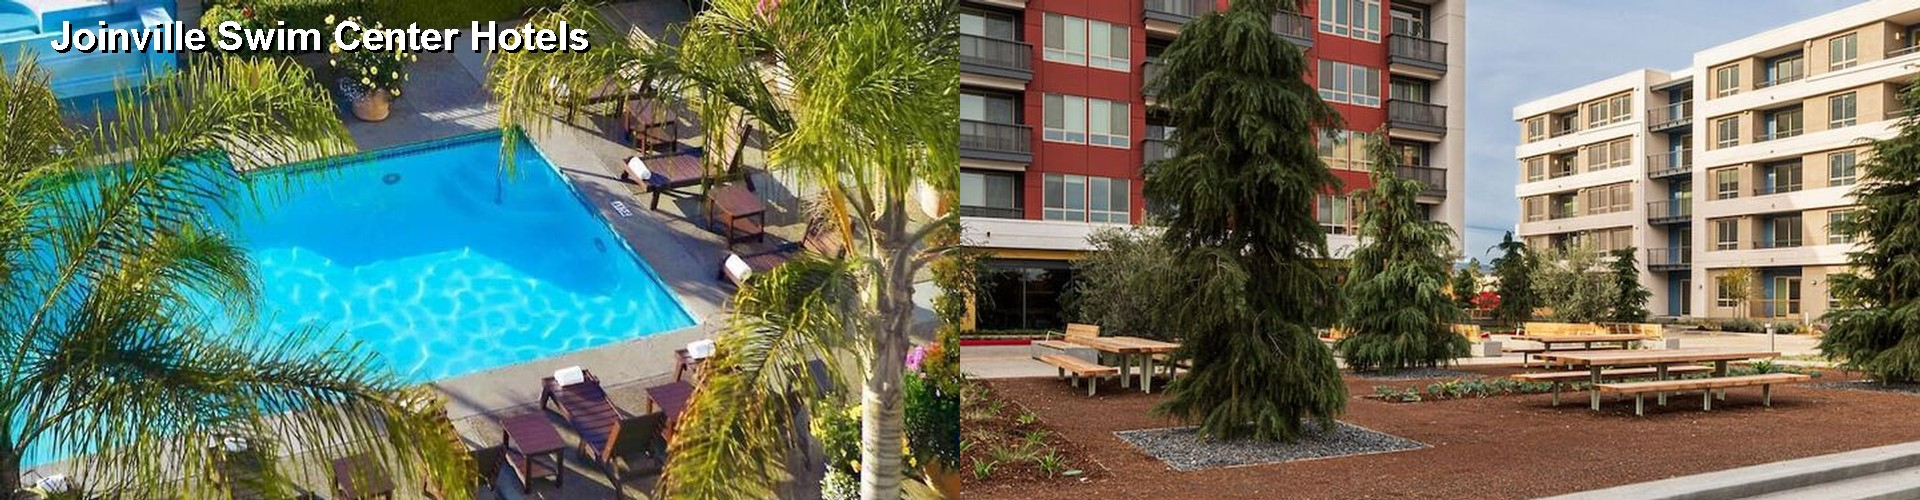 5 Best Hotels near Joinville Swim Center